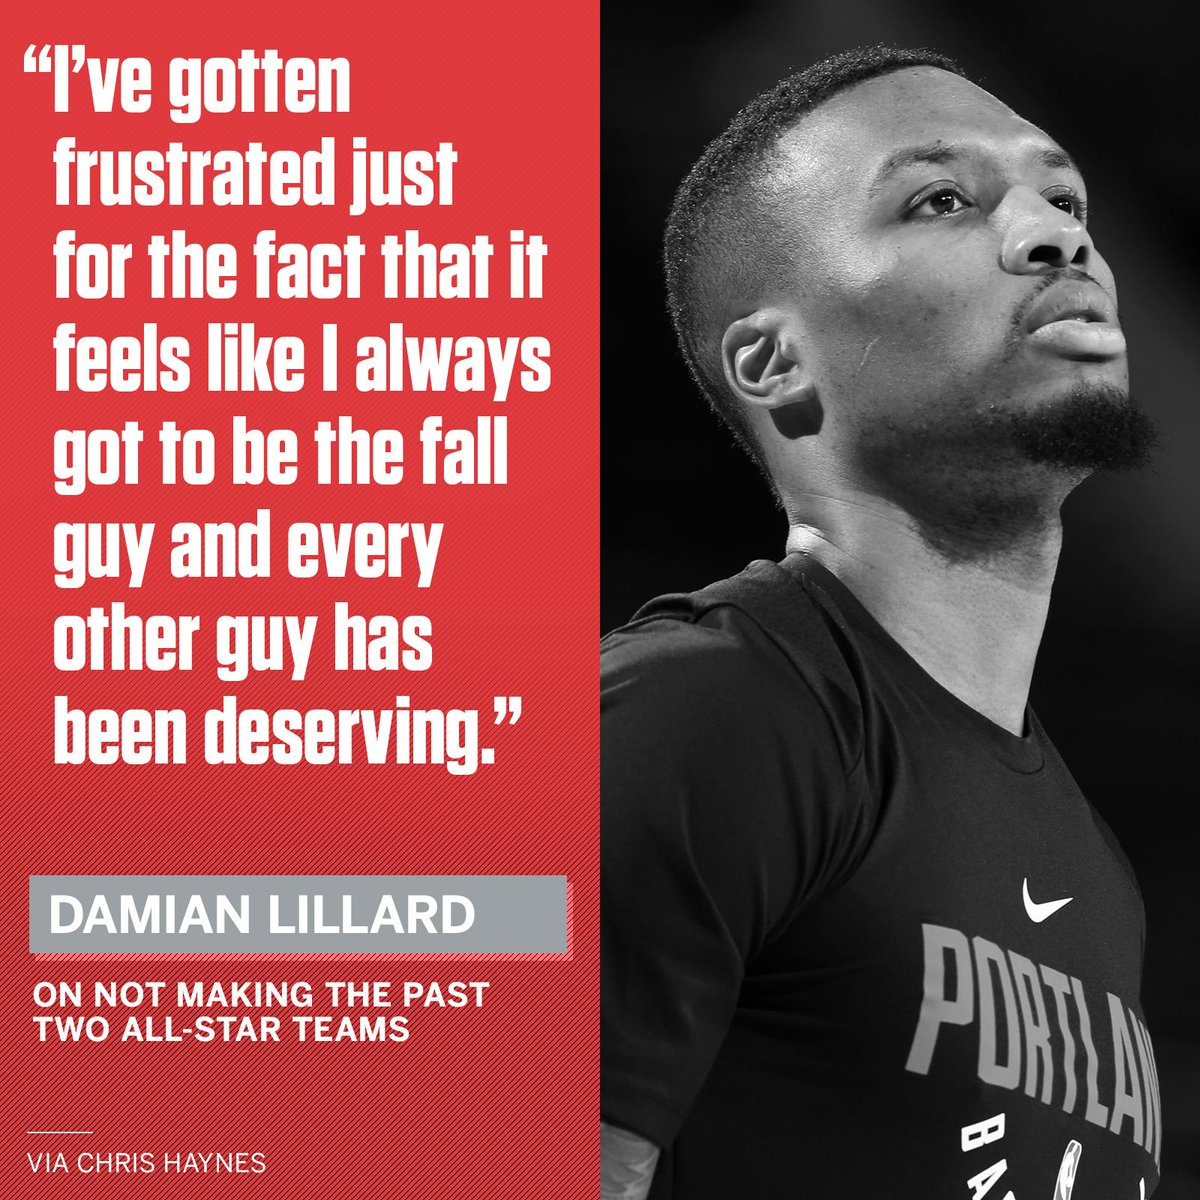 Damian Lillard, along with many others, believe his resume should have double the All-Star appearances.